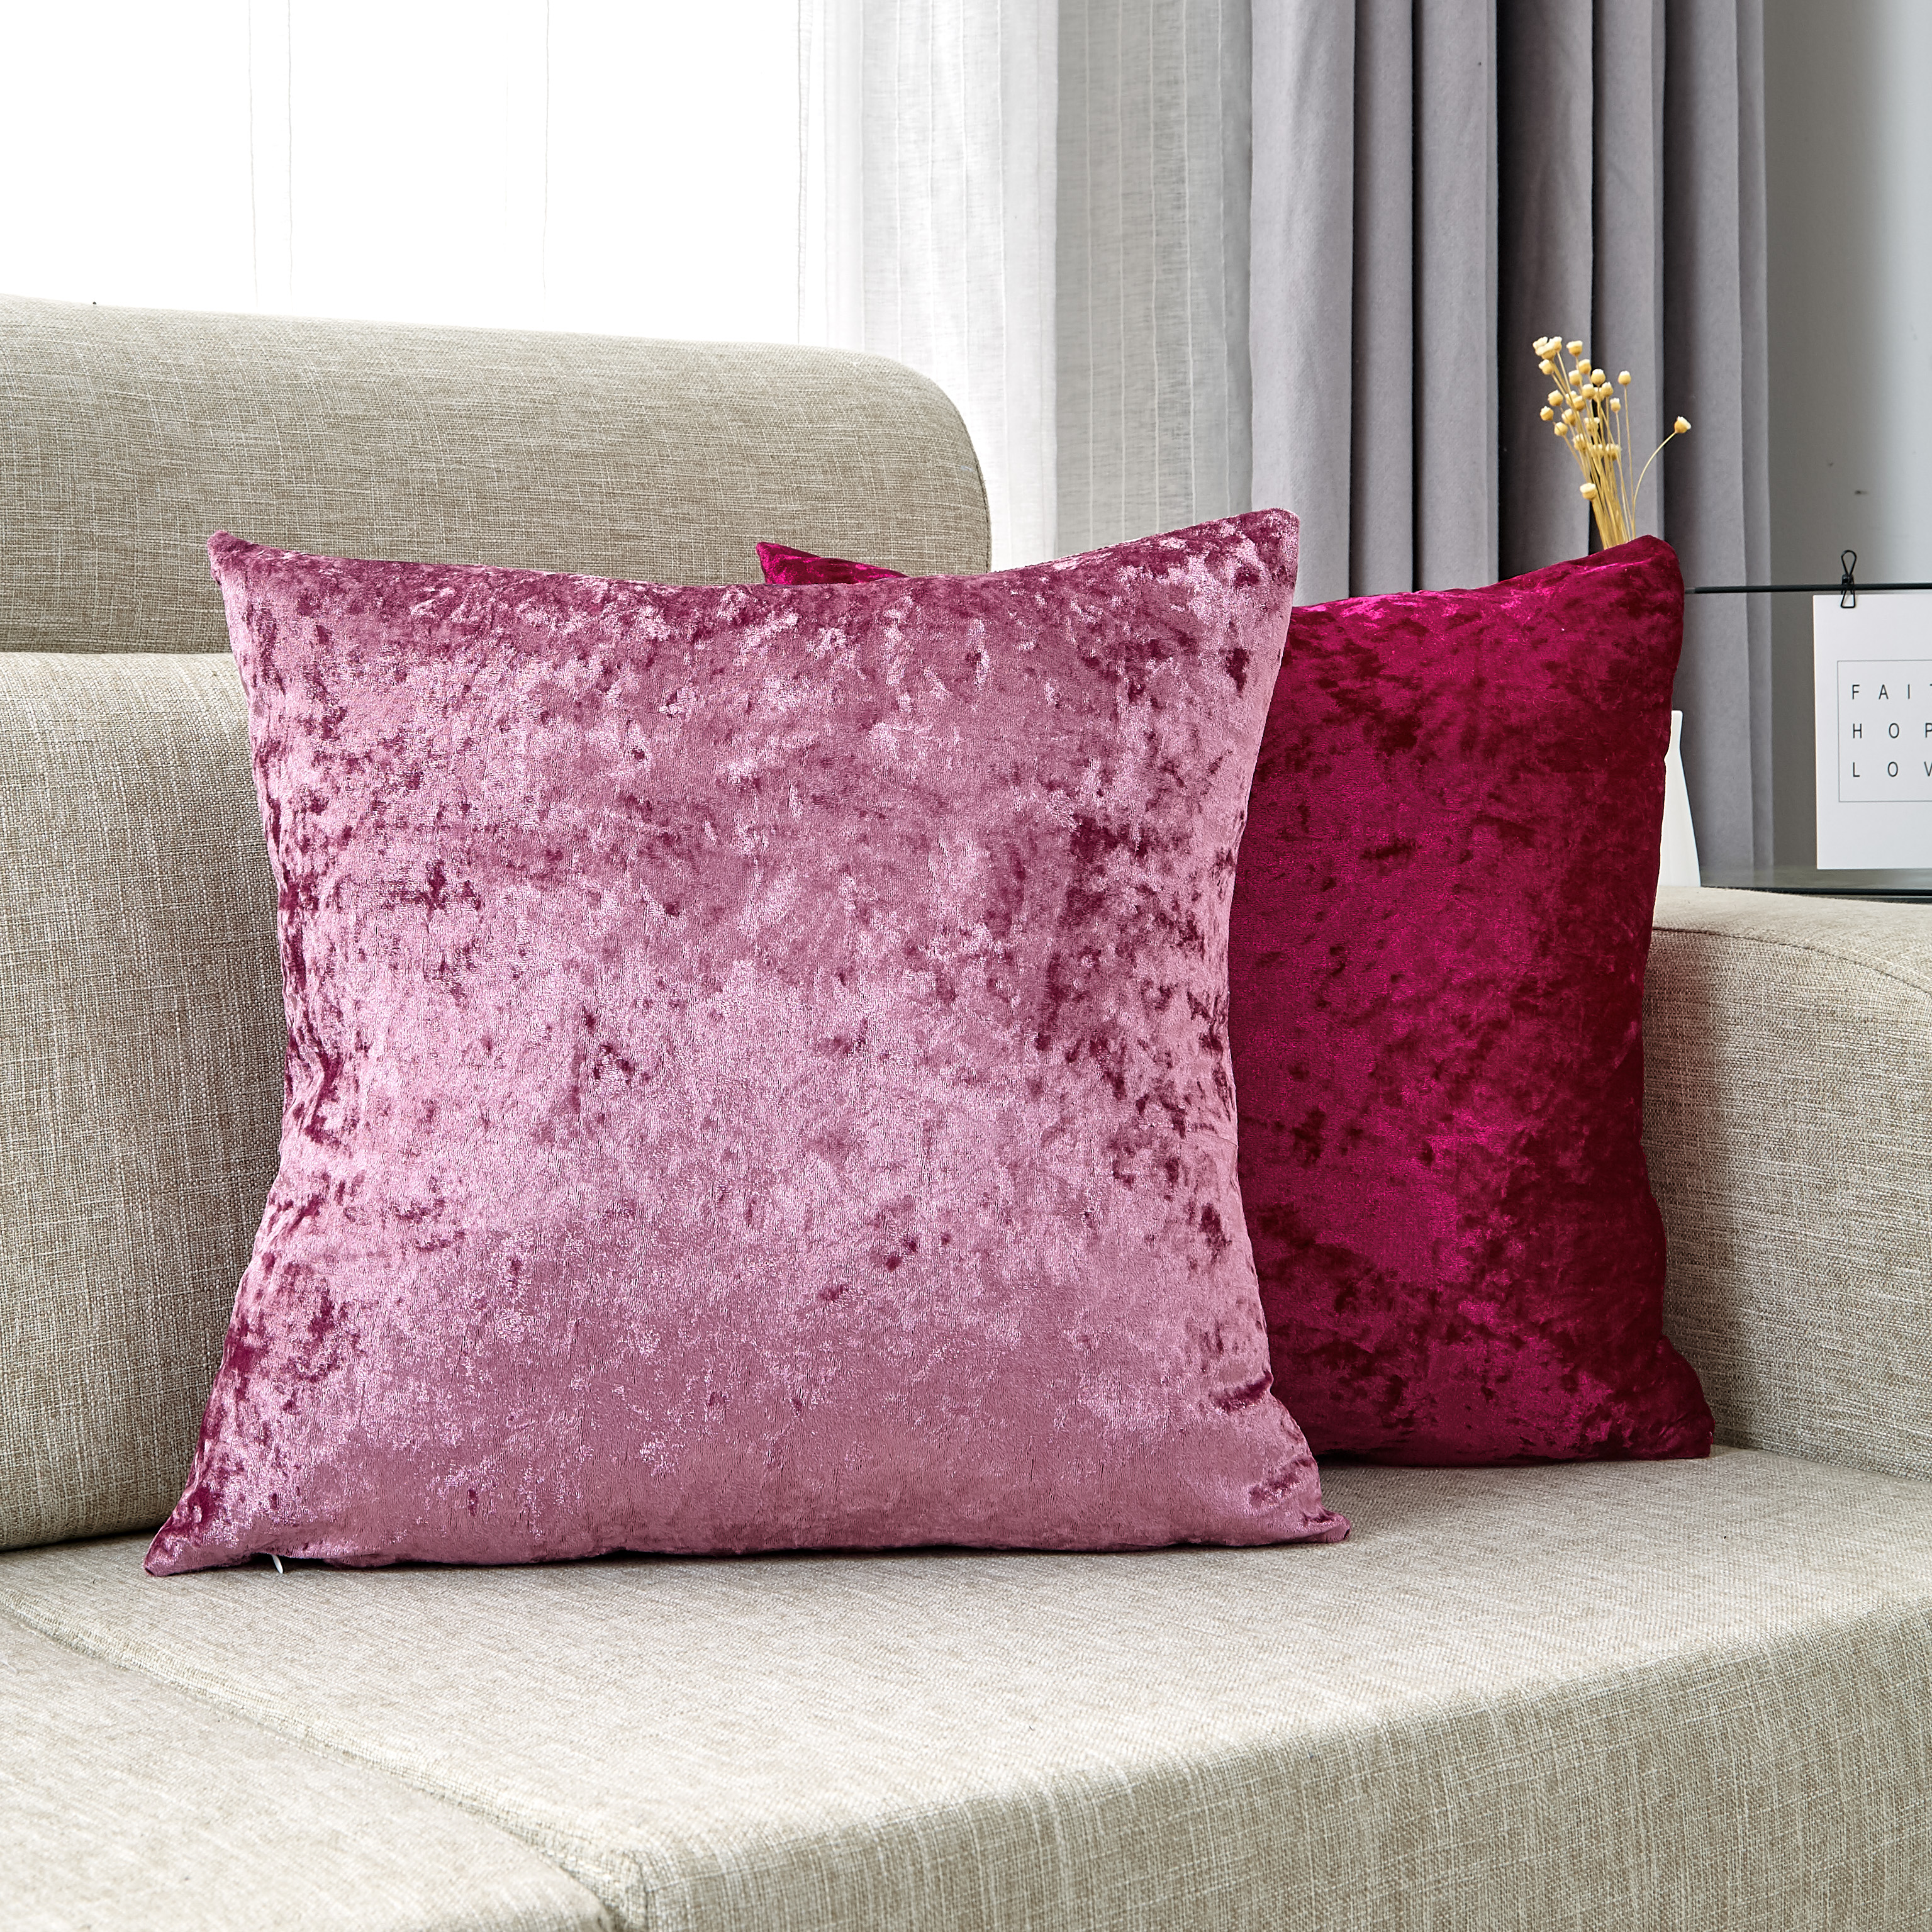 Decorative Pillows Crushed Velvet Cushion Cover Pink Pillow Cover Decoration Home Shiny Kussenhoes For Living Room Home Decor